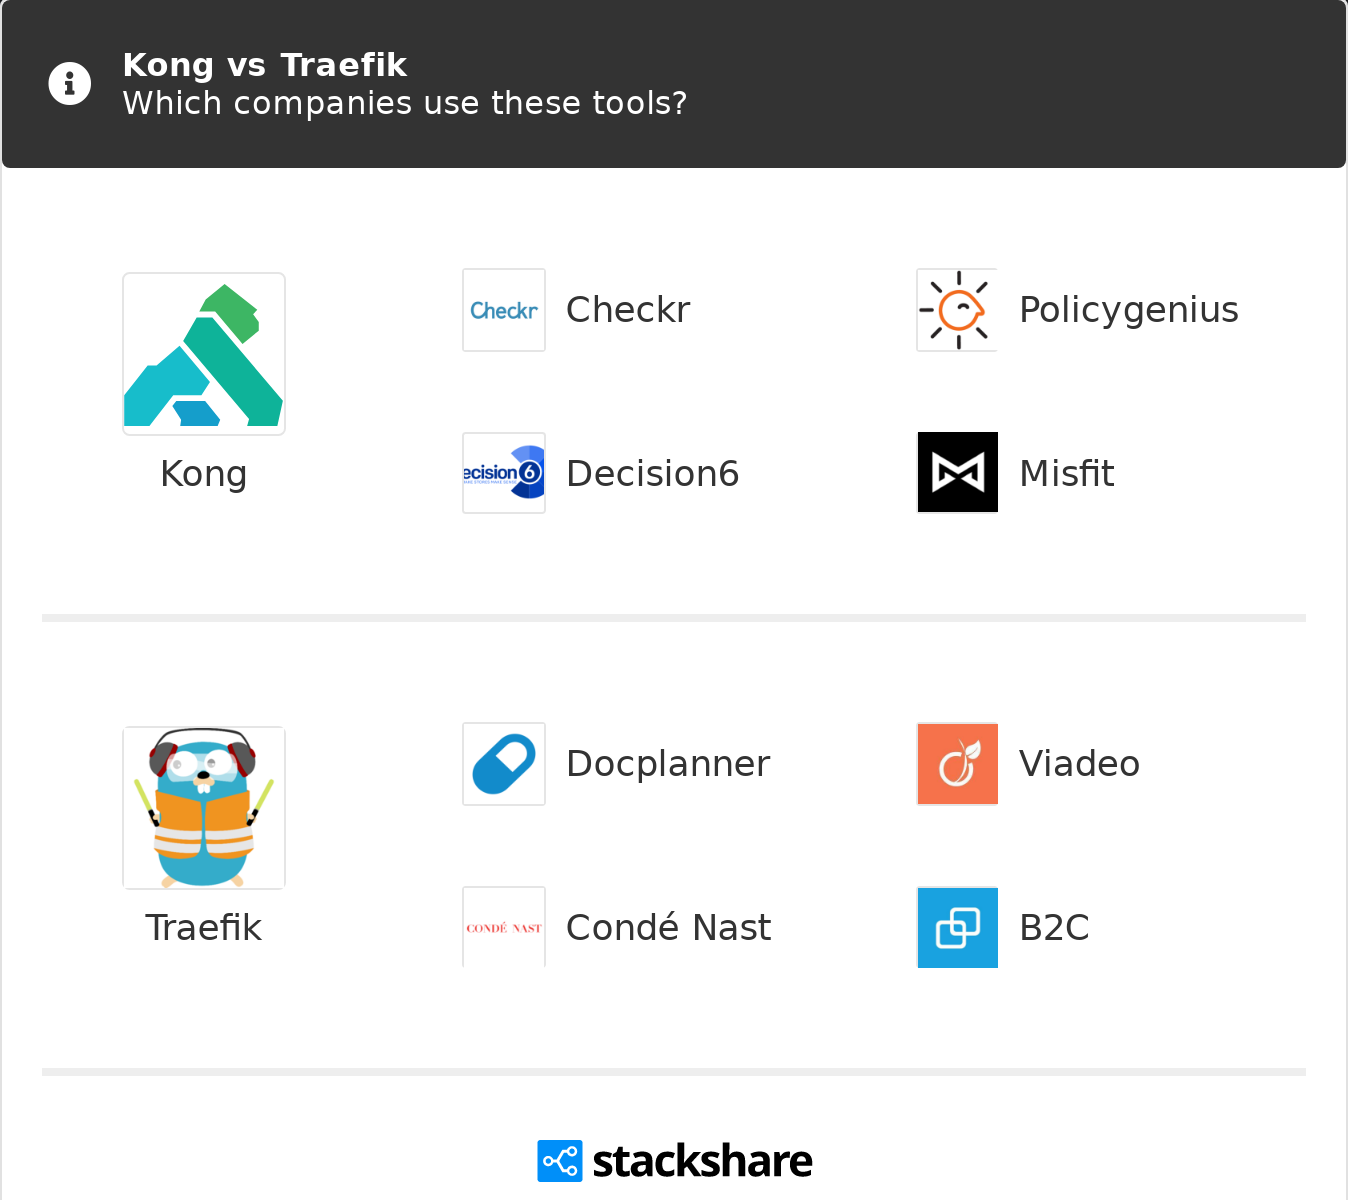 Kong vs Traefik   What are the differences?